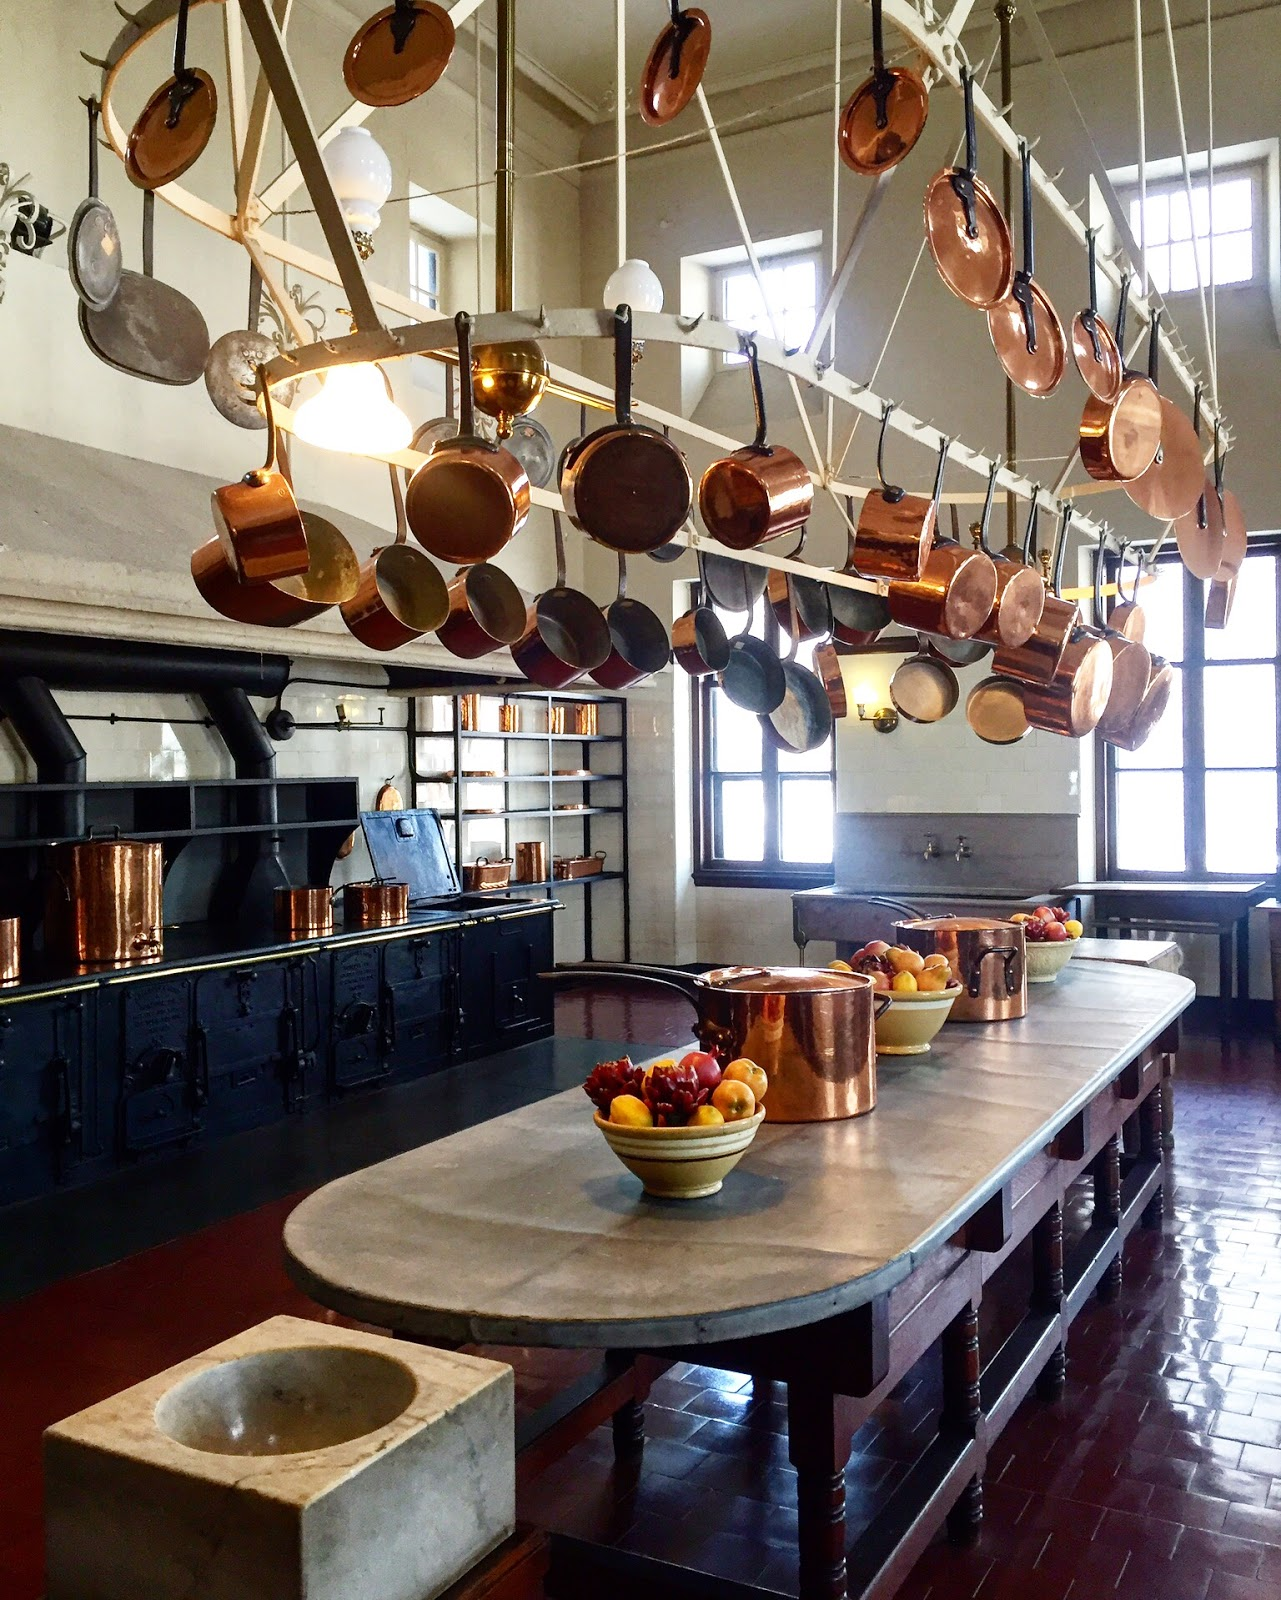 kitchen and copper pots breakers newport rhode island - Copper Pots